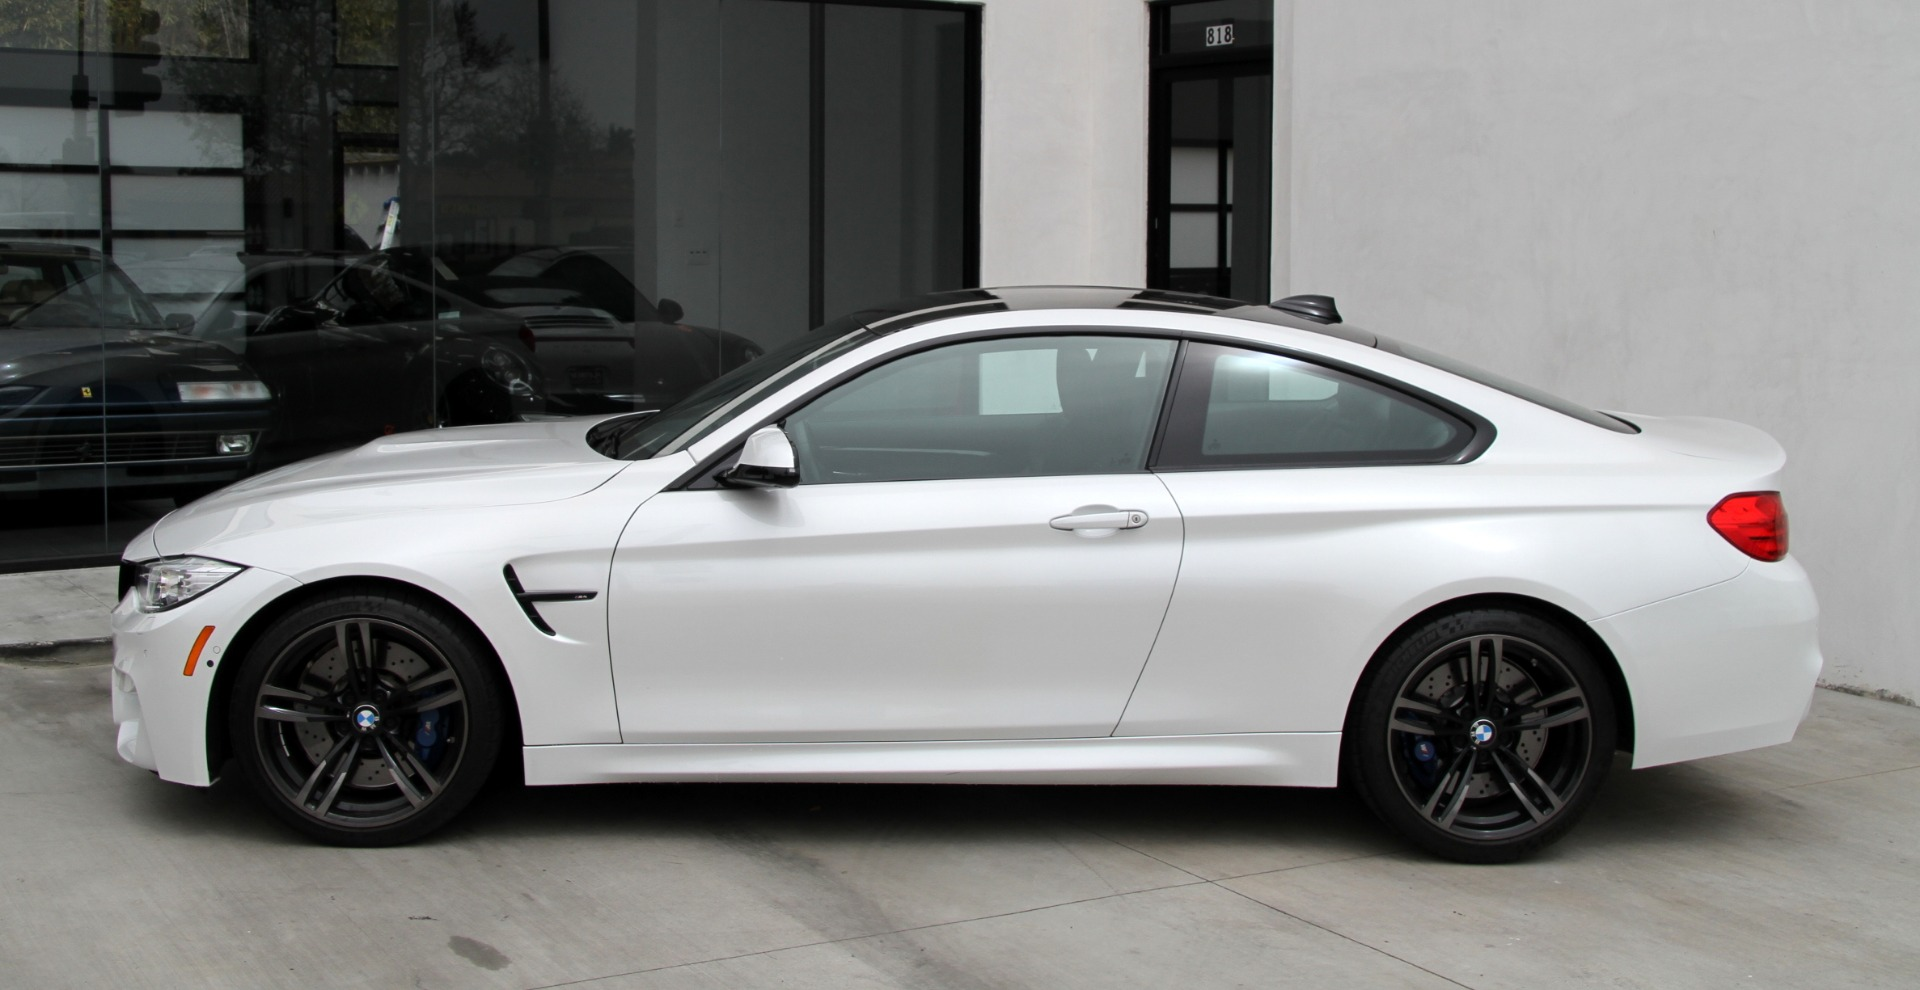 BMW Dealership Near Me >> 2015 BMW M4 ** Carbon Fiber Roof ** Stock # 6151 for sale ...